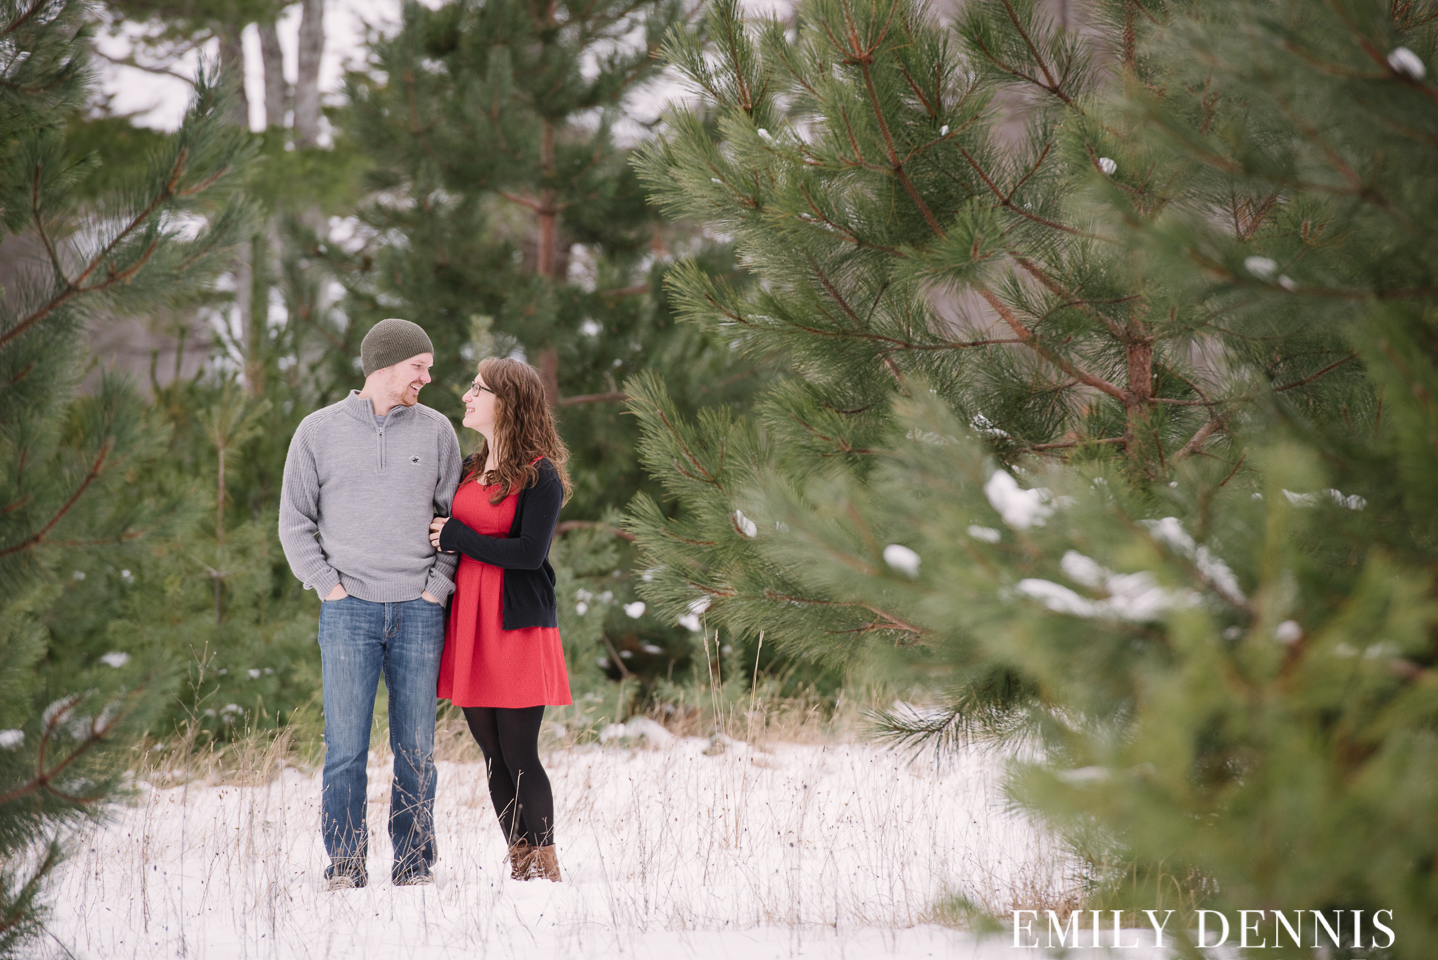 EMILY_DENNIS_PHOTOGRAPHY_engagement-11